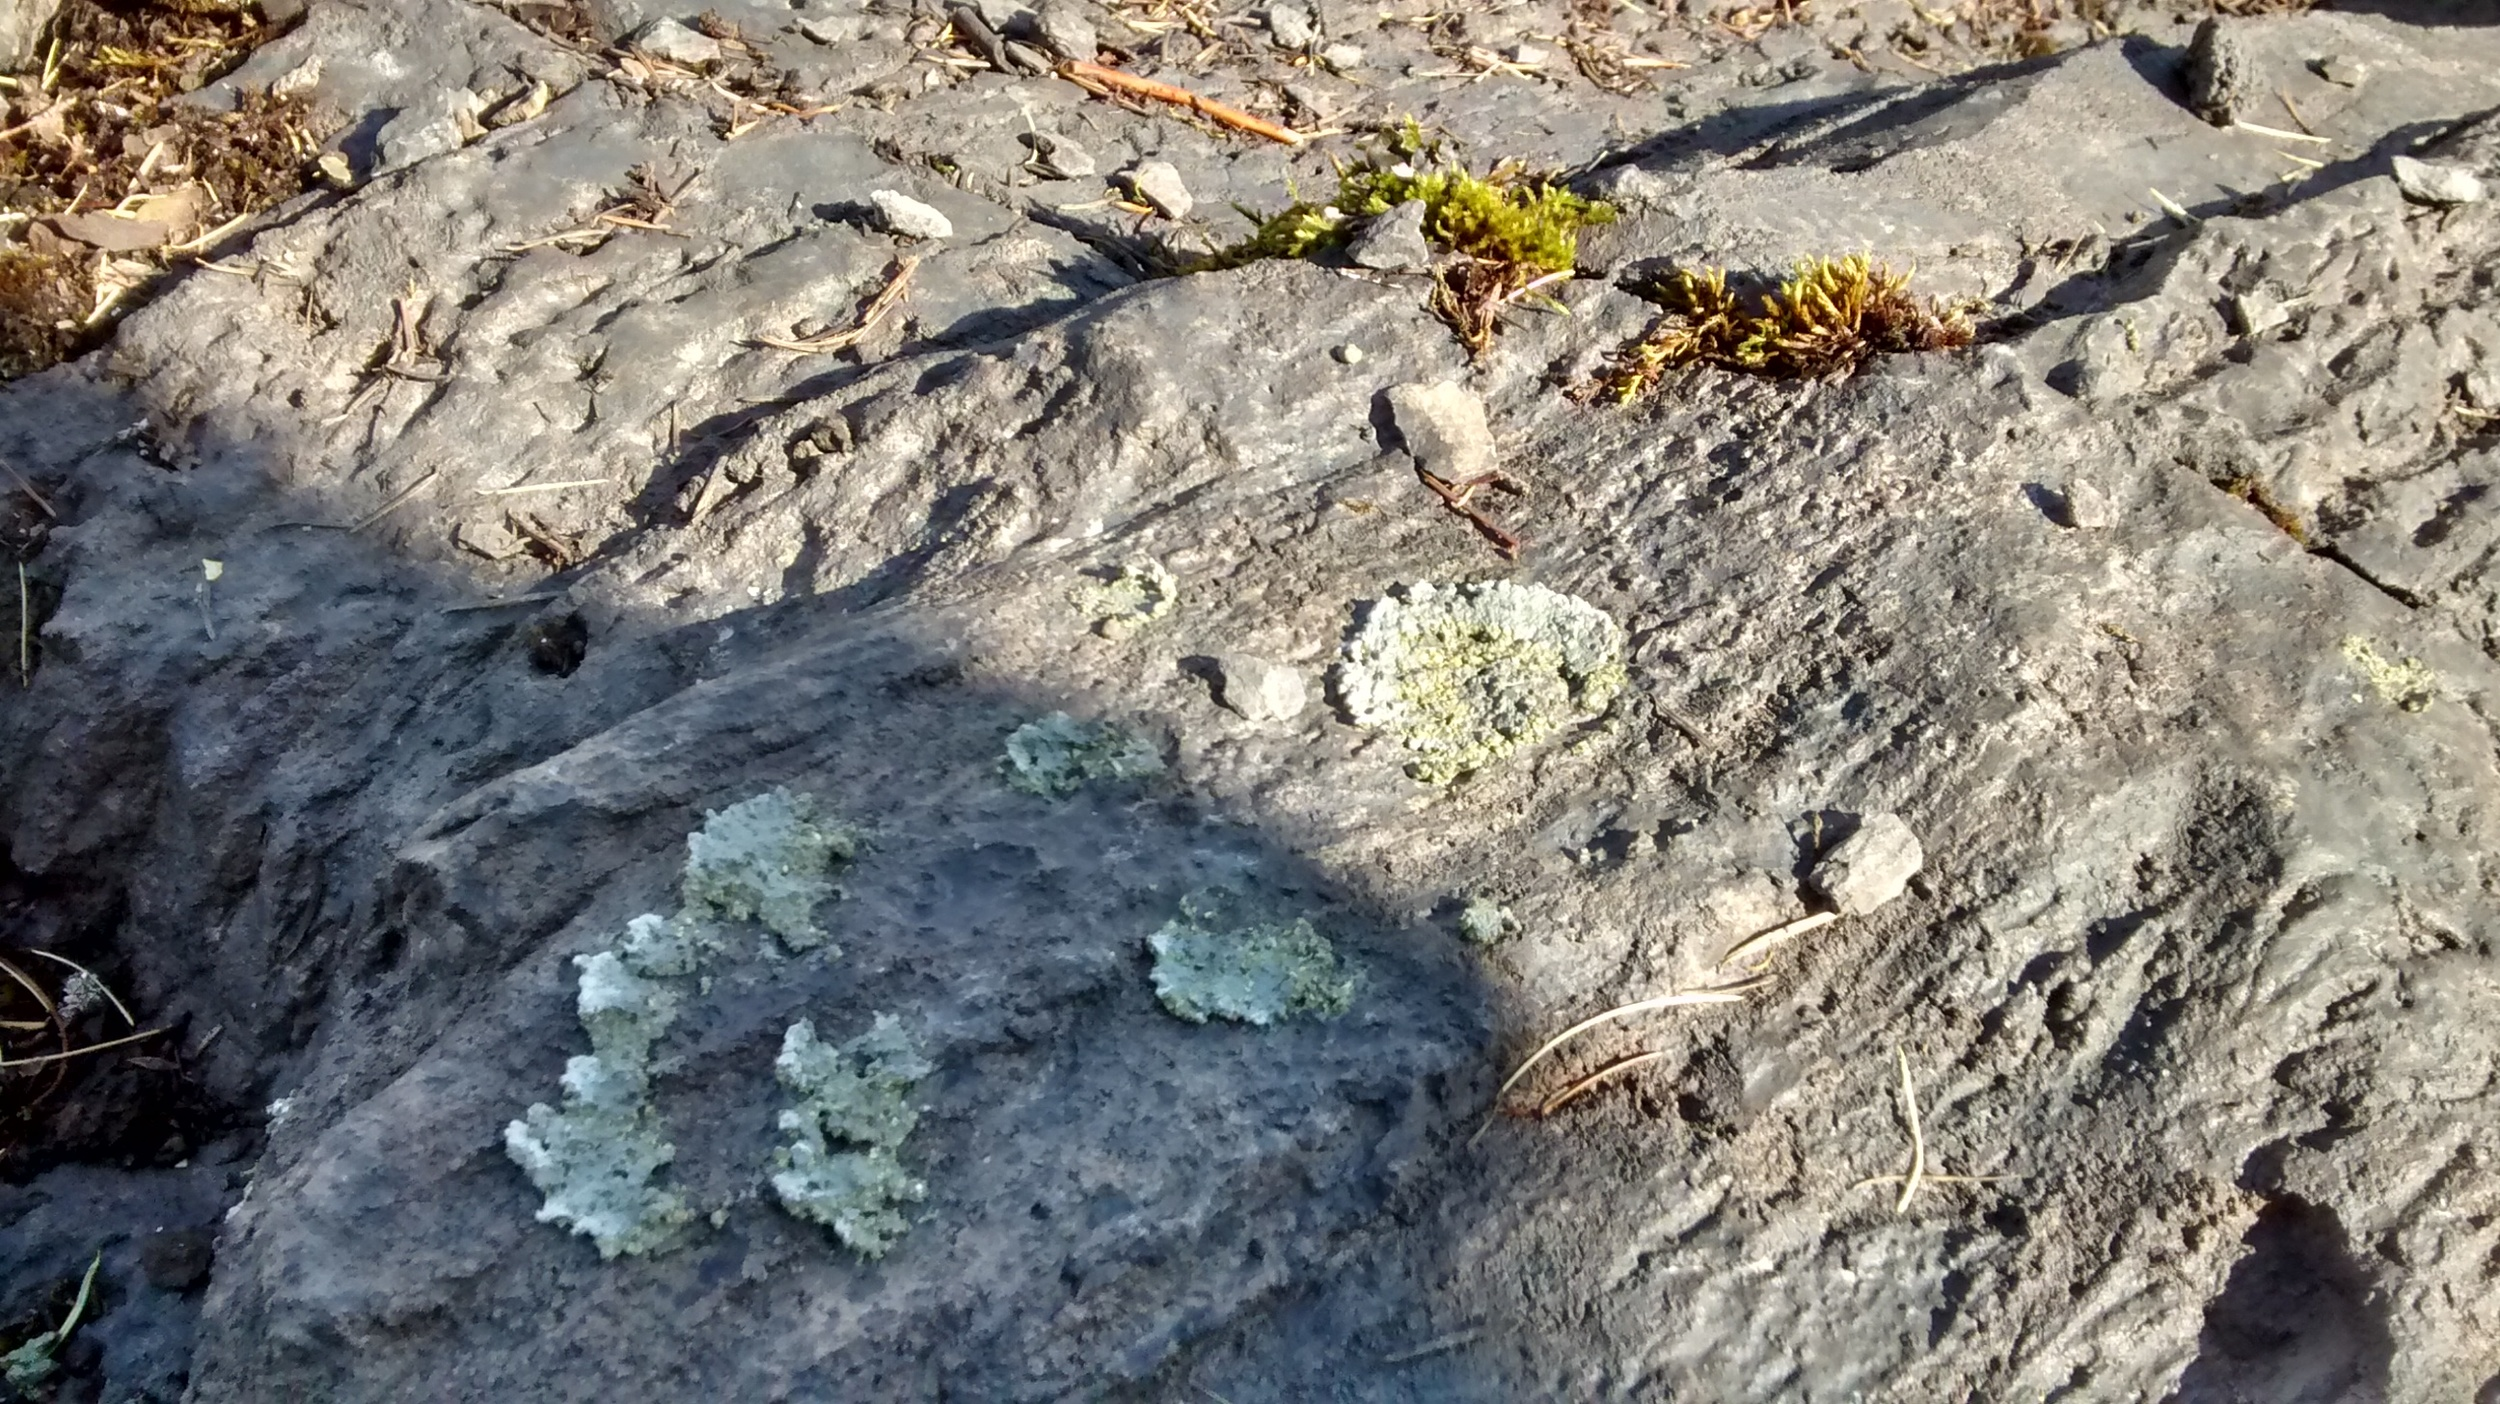 Details will make a piece convincingly real. Notice the color and texture of the faux lichen.